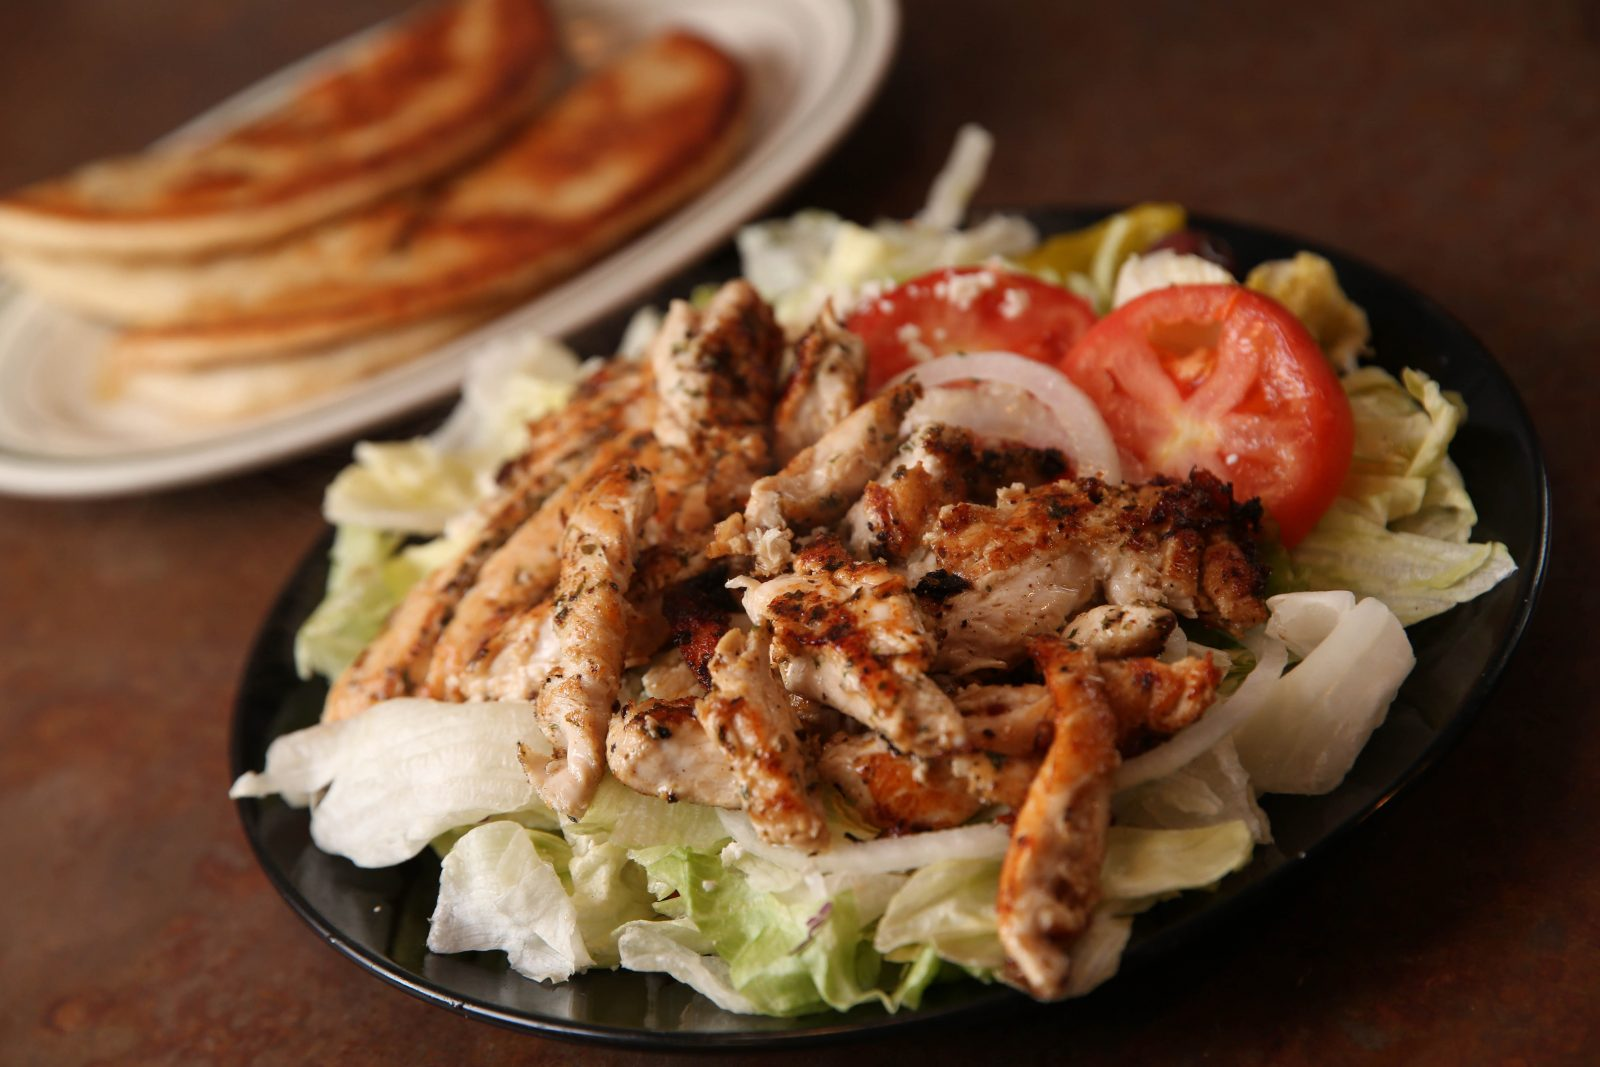 Open chicken souvlaki at Nick's Place, a neighborhood favorite in Black Rock, will be the model for the version offered at Nick's Place Express in Kenmore. (Sharon Cantillon/Buffalo News)